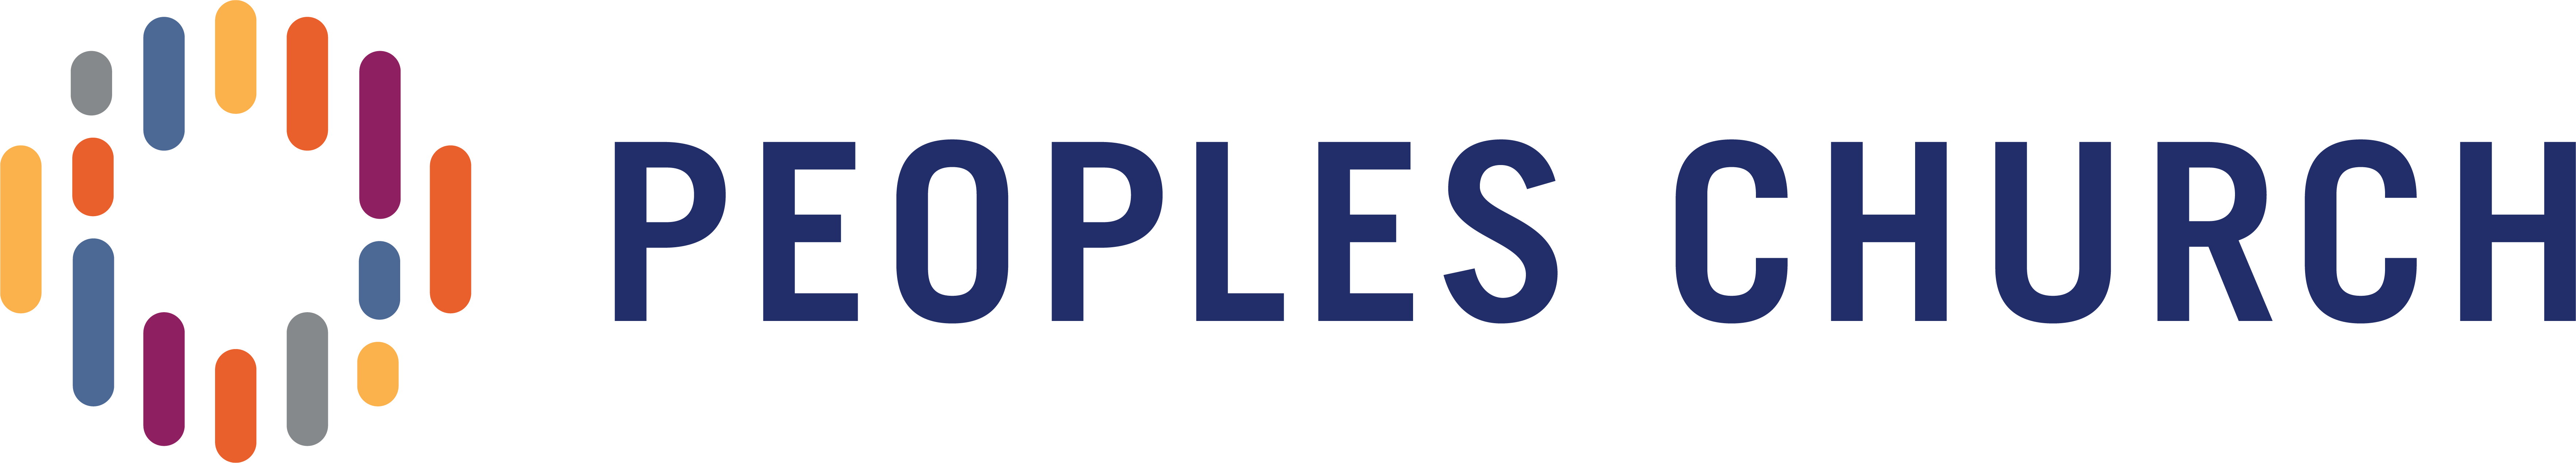 Peoples Church Network